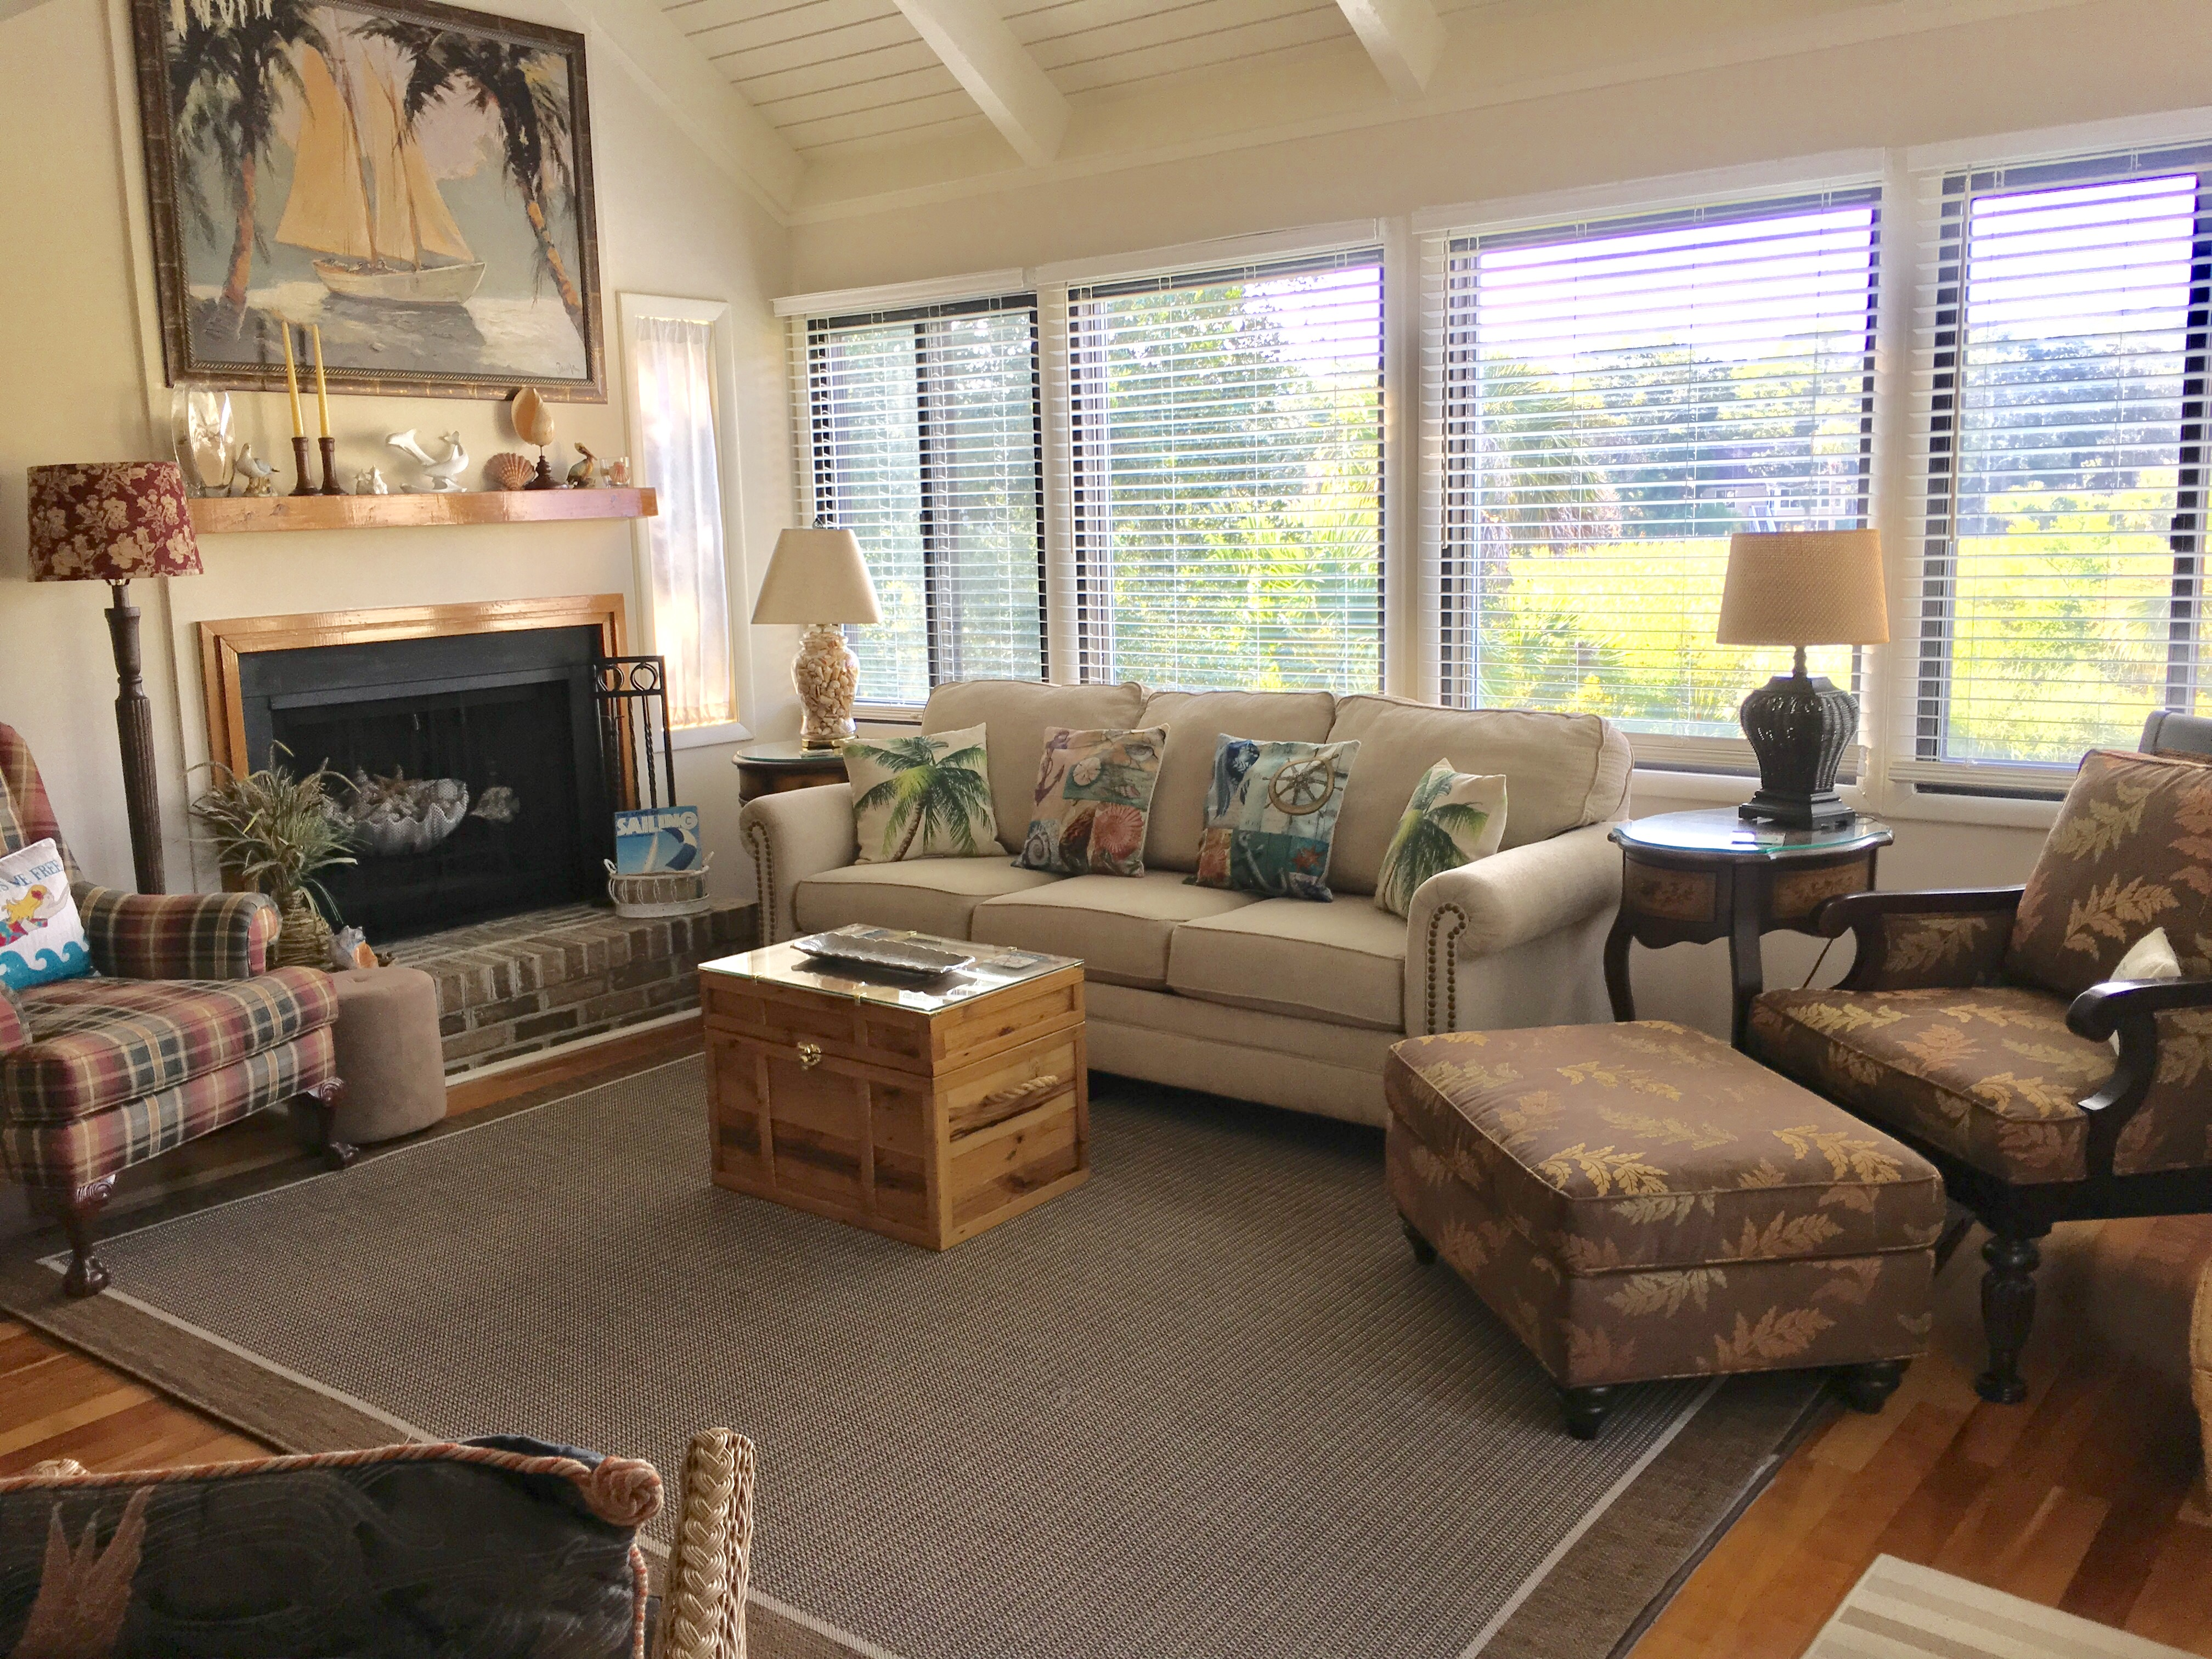 Comfortable living room furniture to relax after a day at the beach.